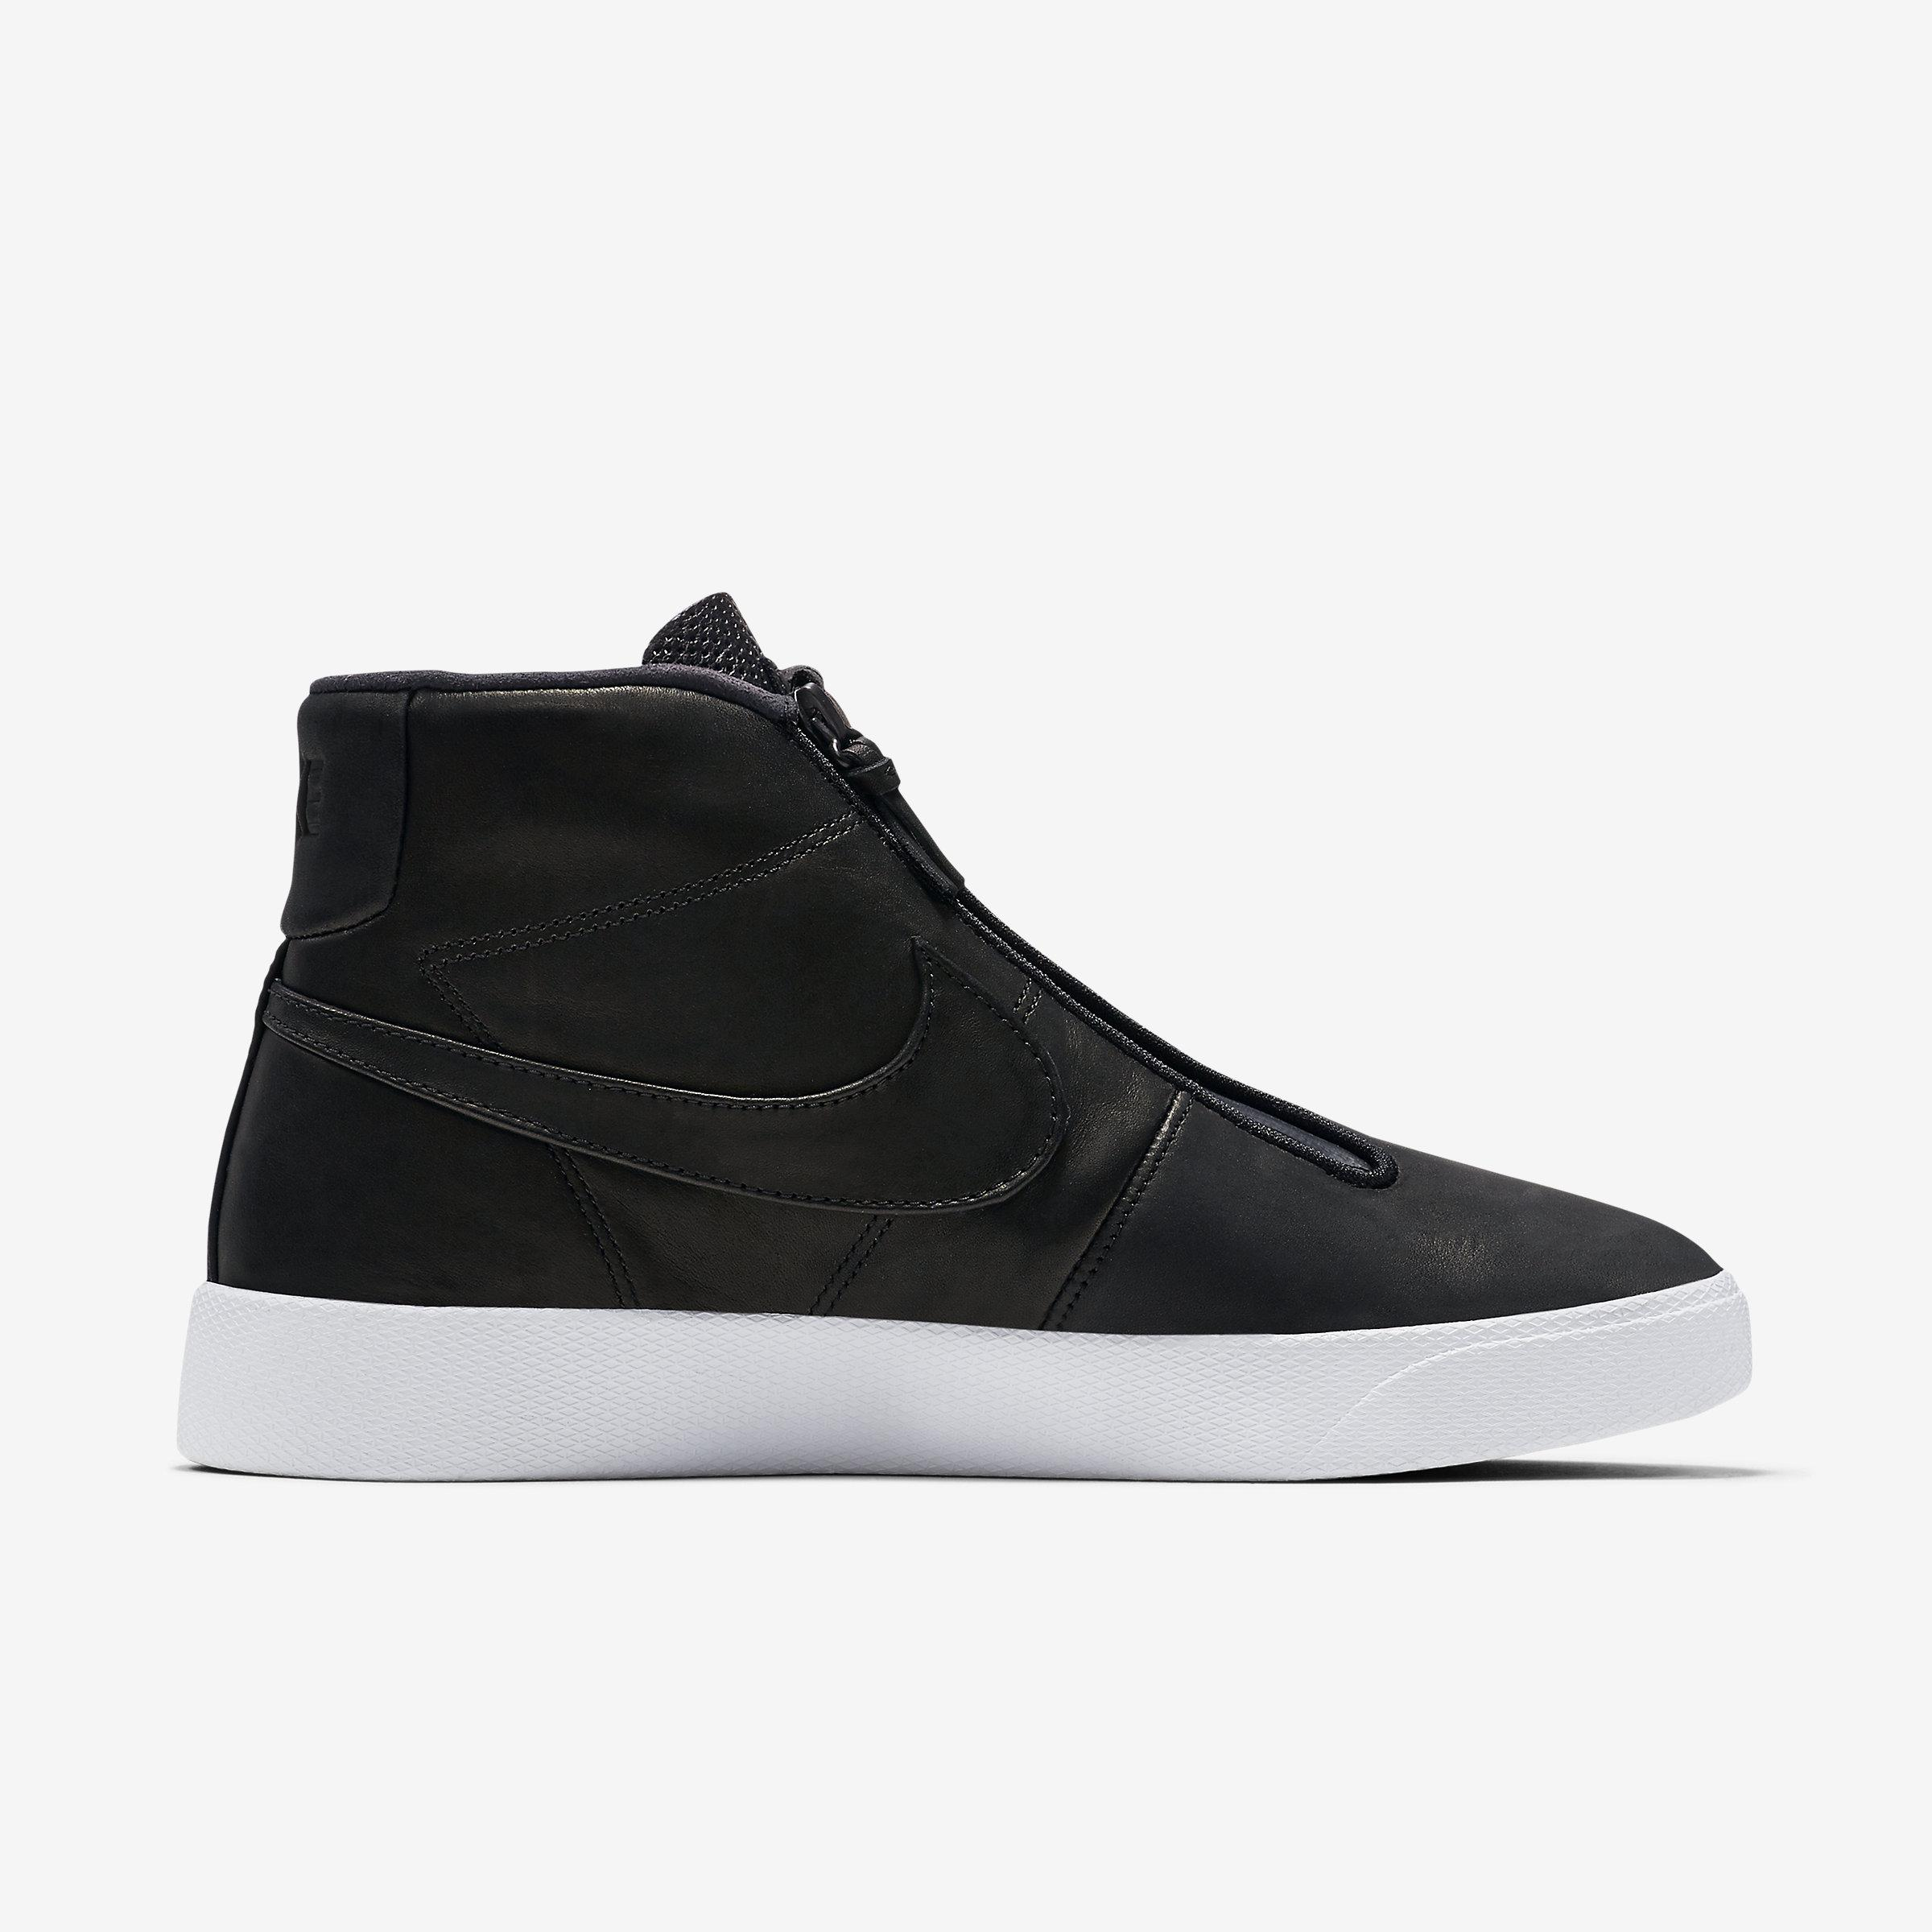 Nike Suede Blazer Advanced in Black,Black,White,Black (Black) for Men